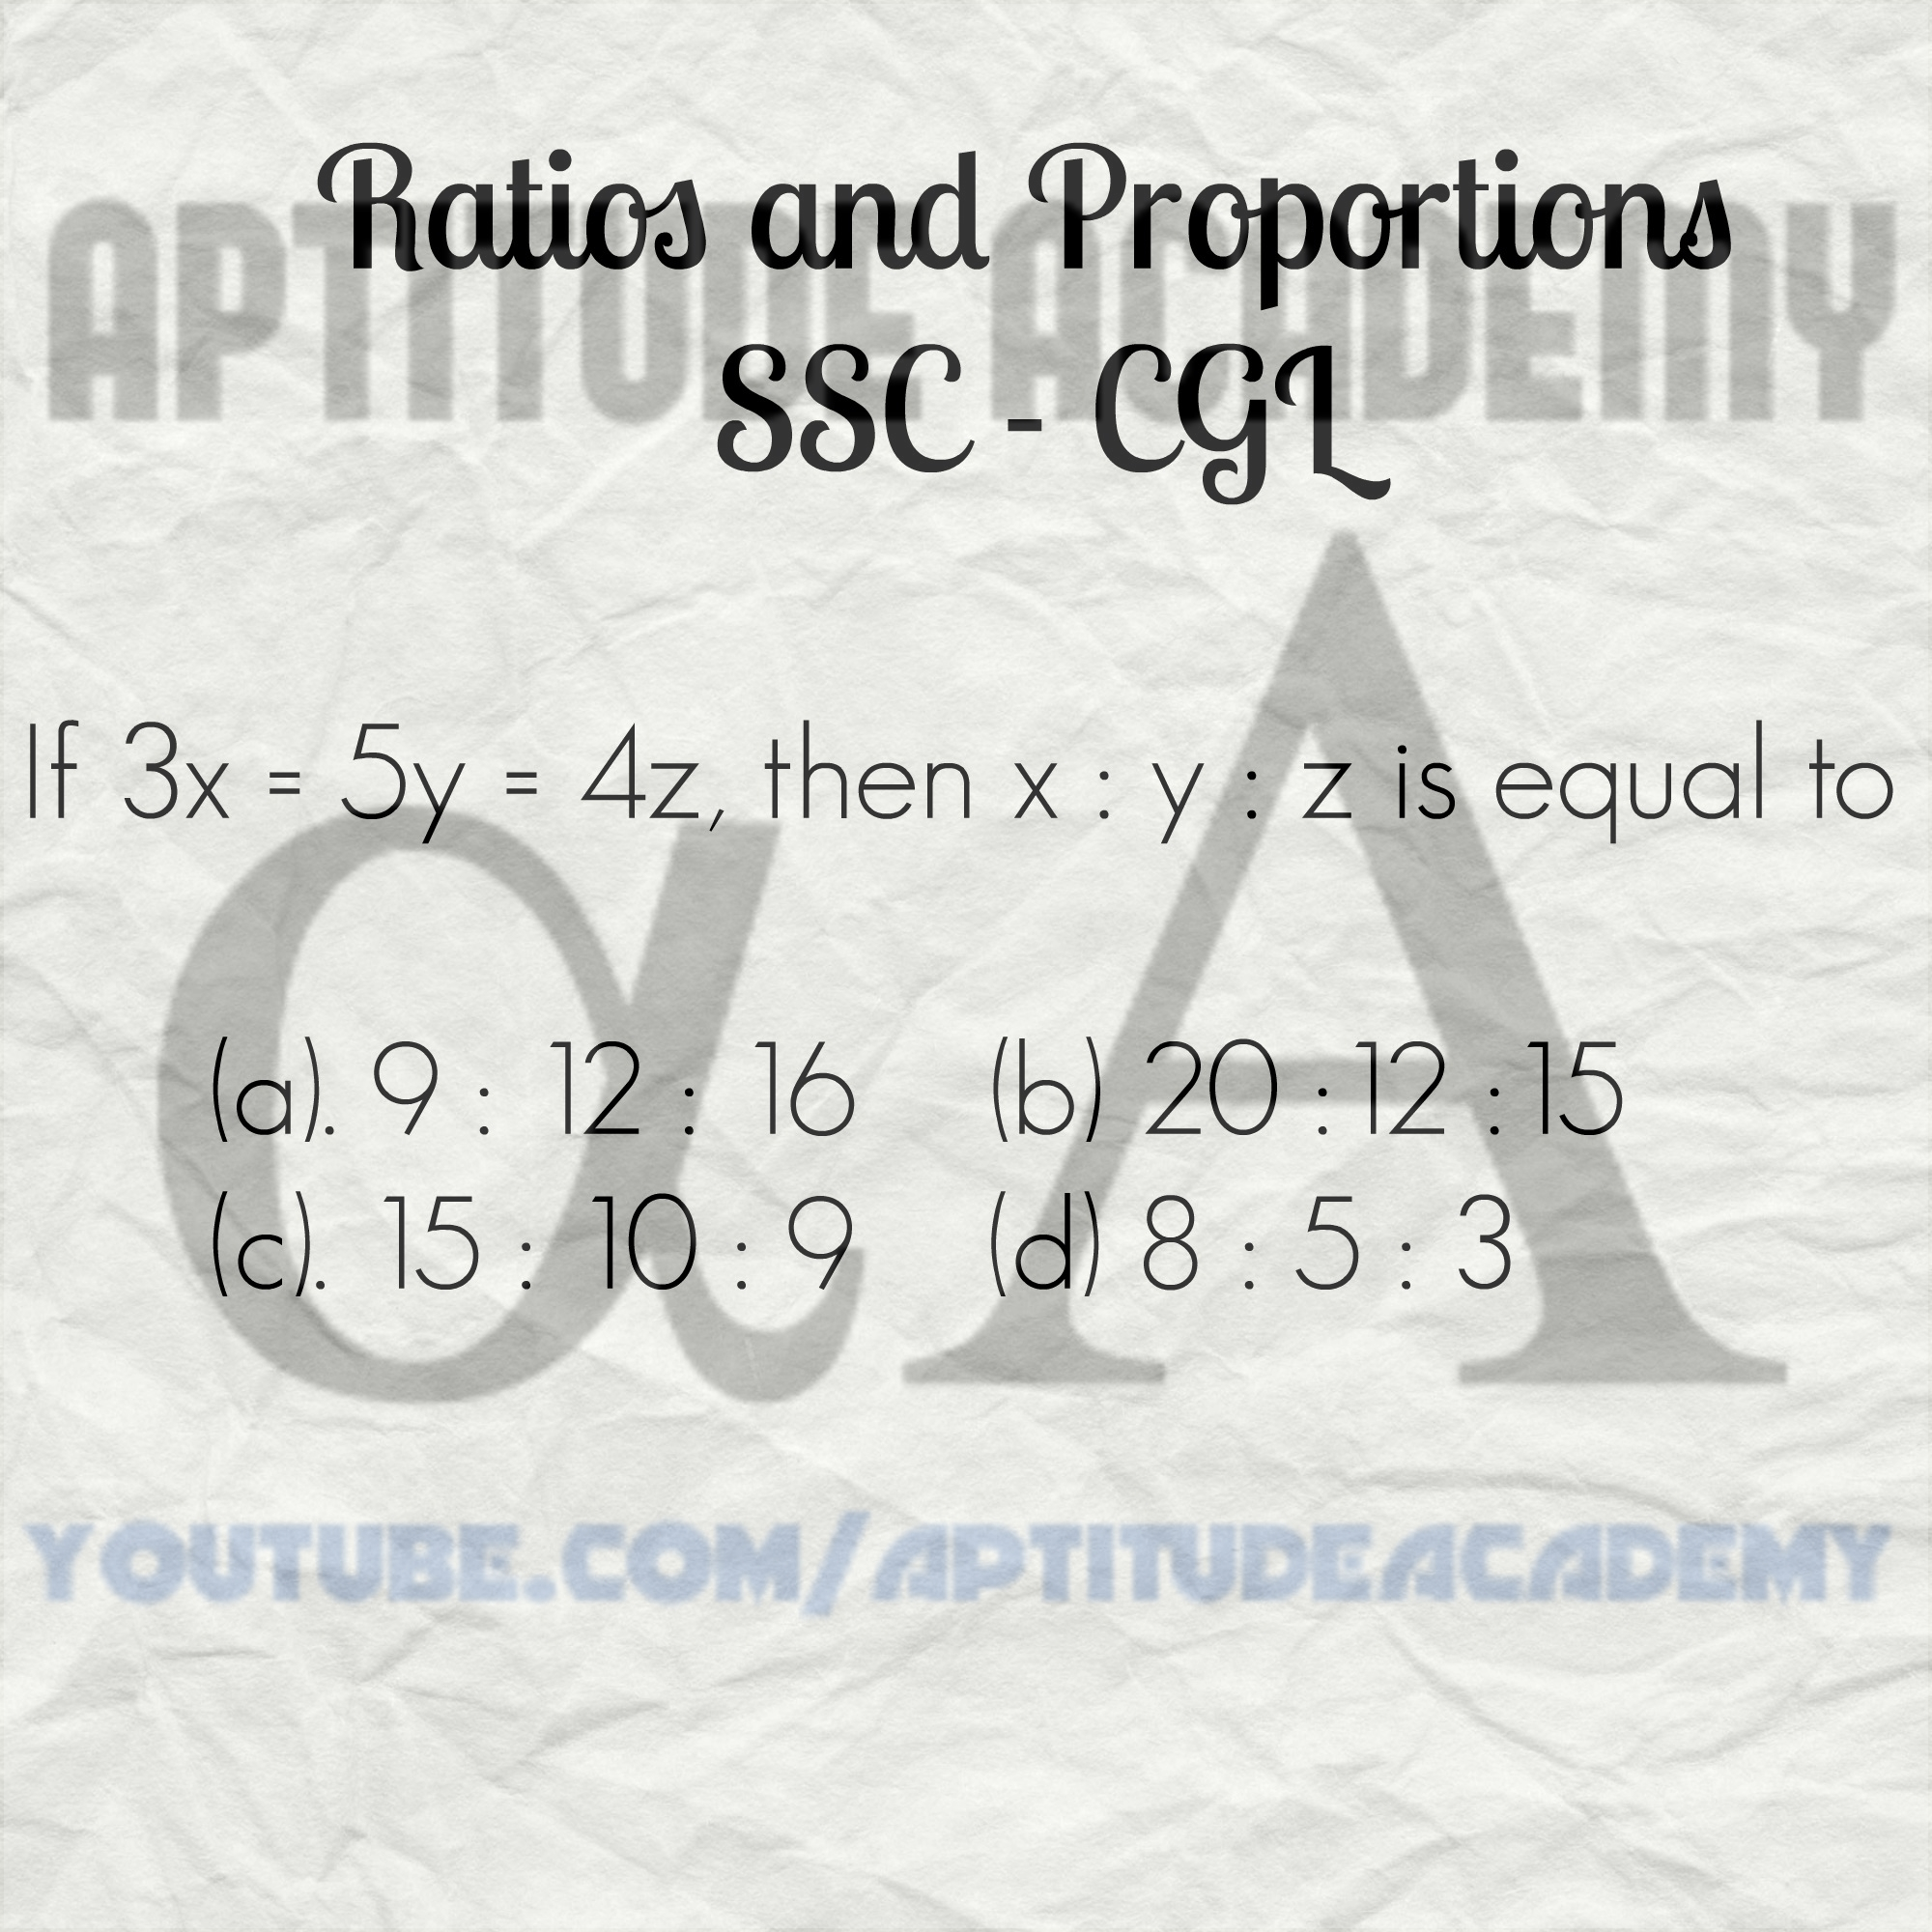 Problem on Ratios and Proportions for SSC-CGL 2016